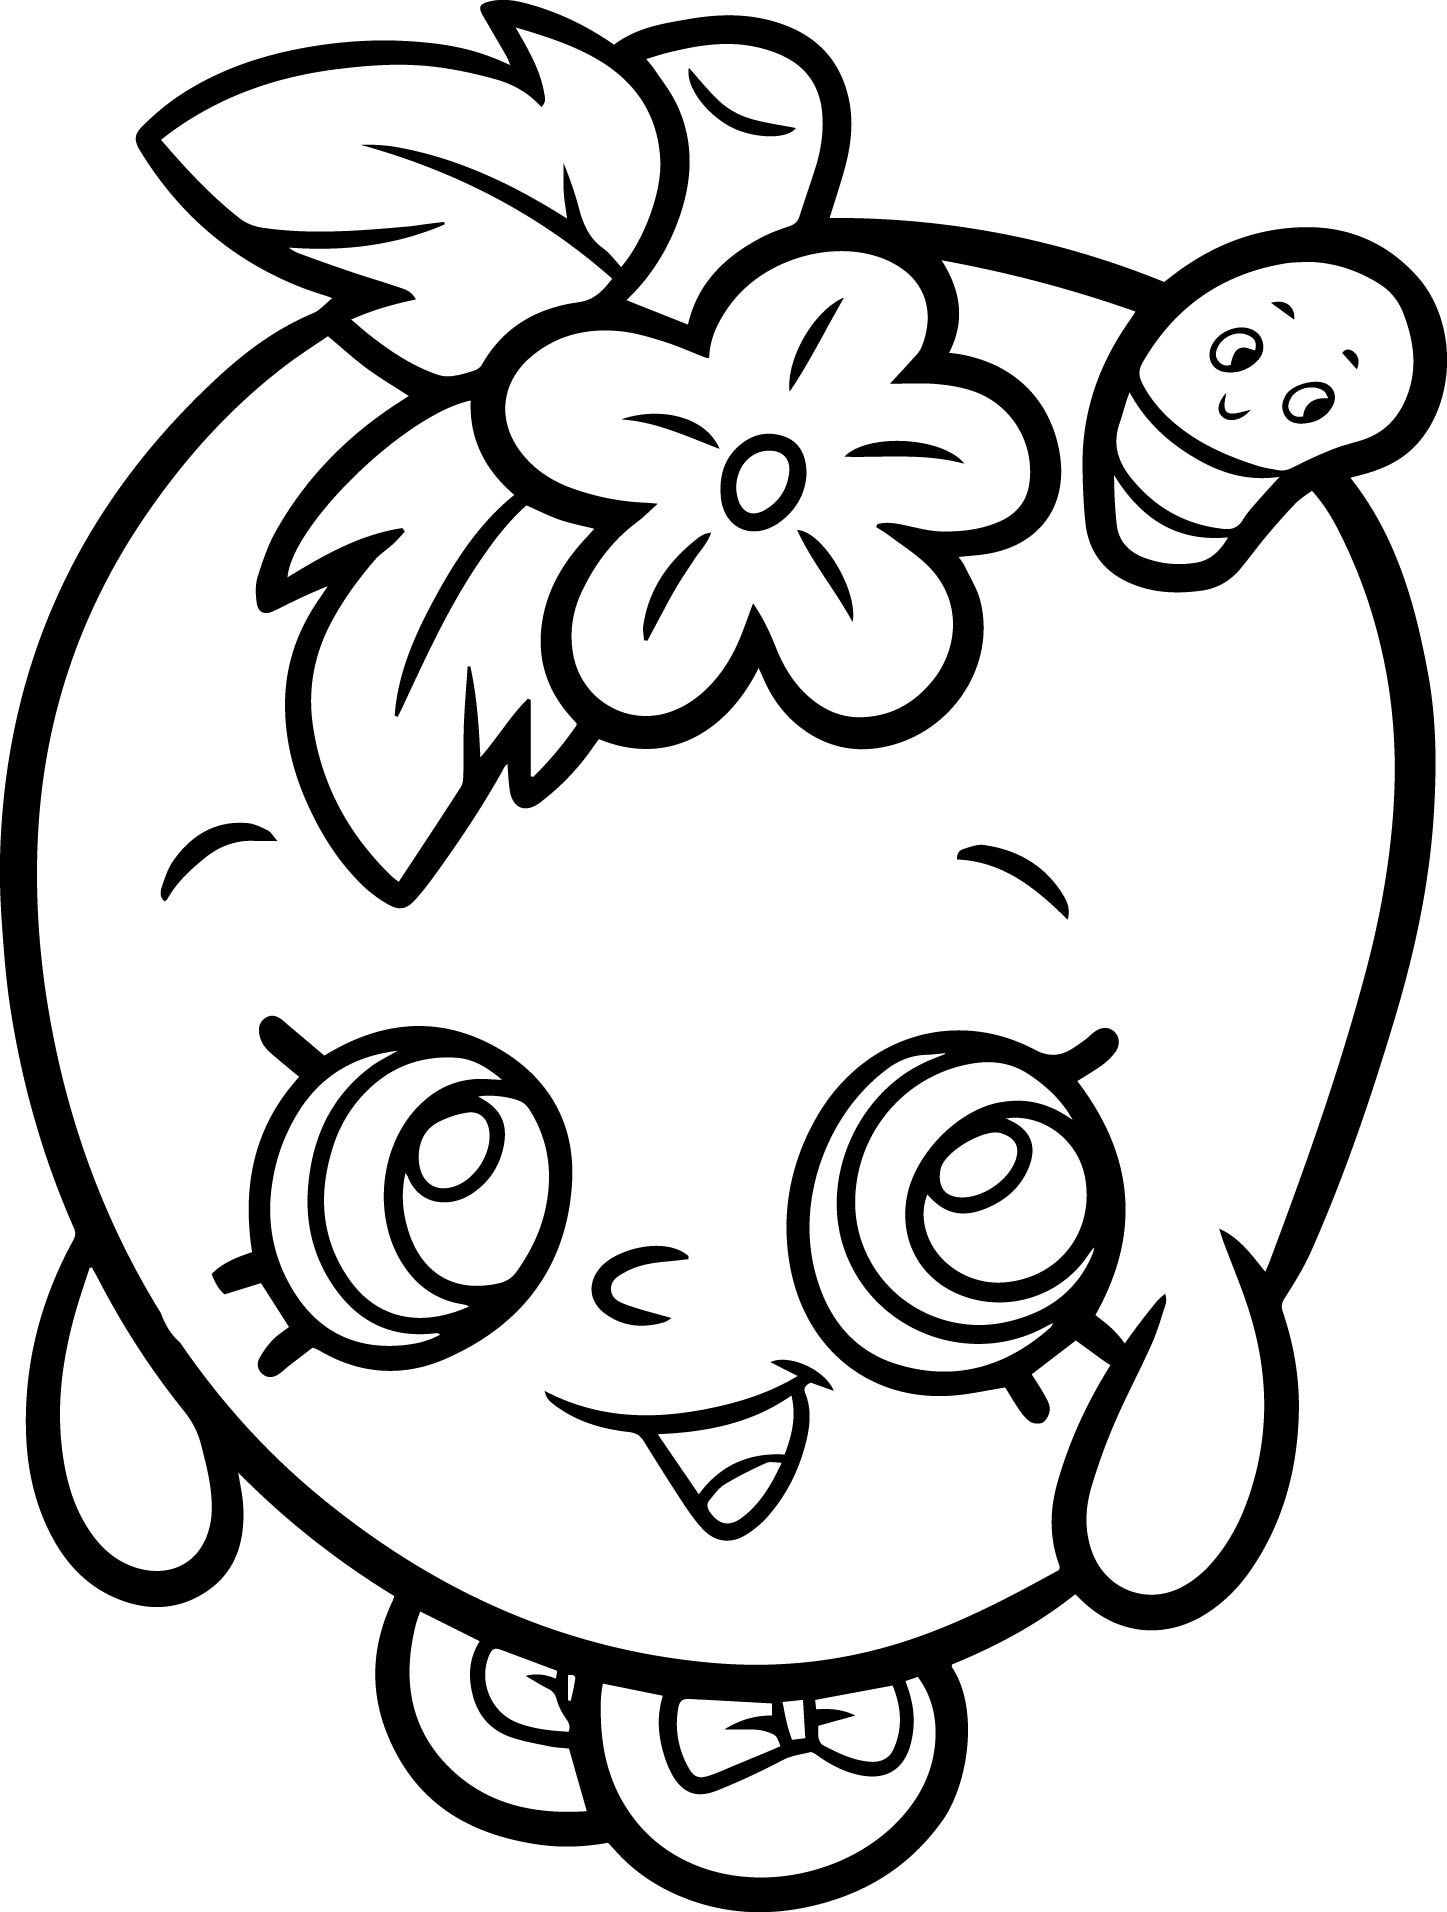 Shopkins coloring pages kook cookie - Apple Blossom From Shopkins Coloring Page